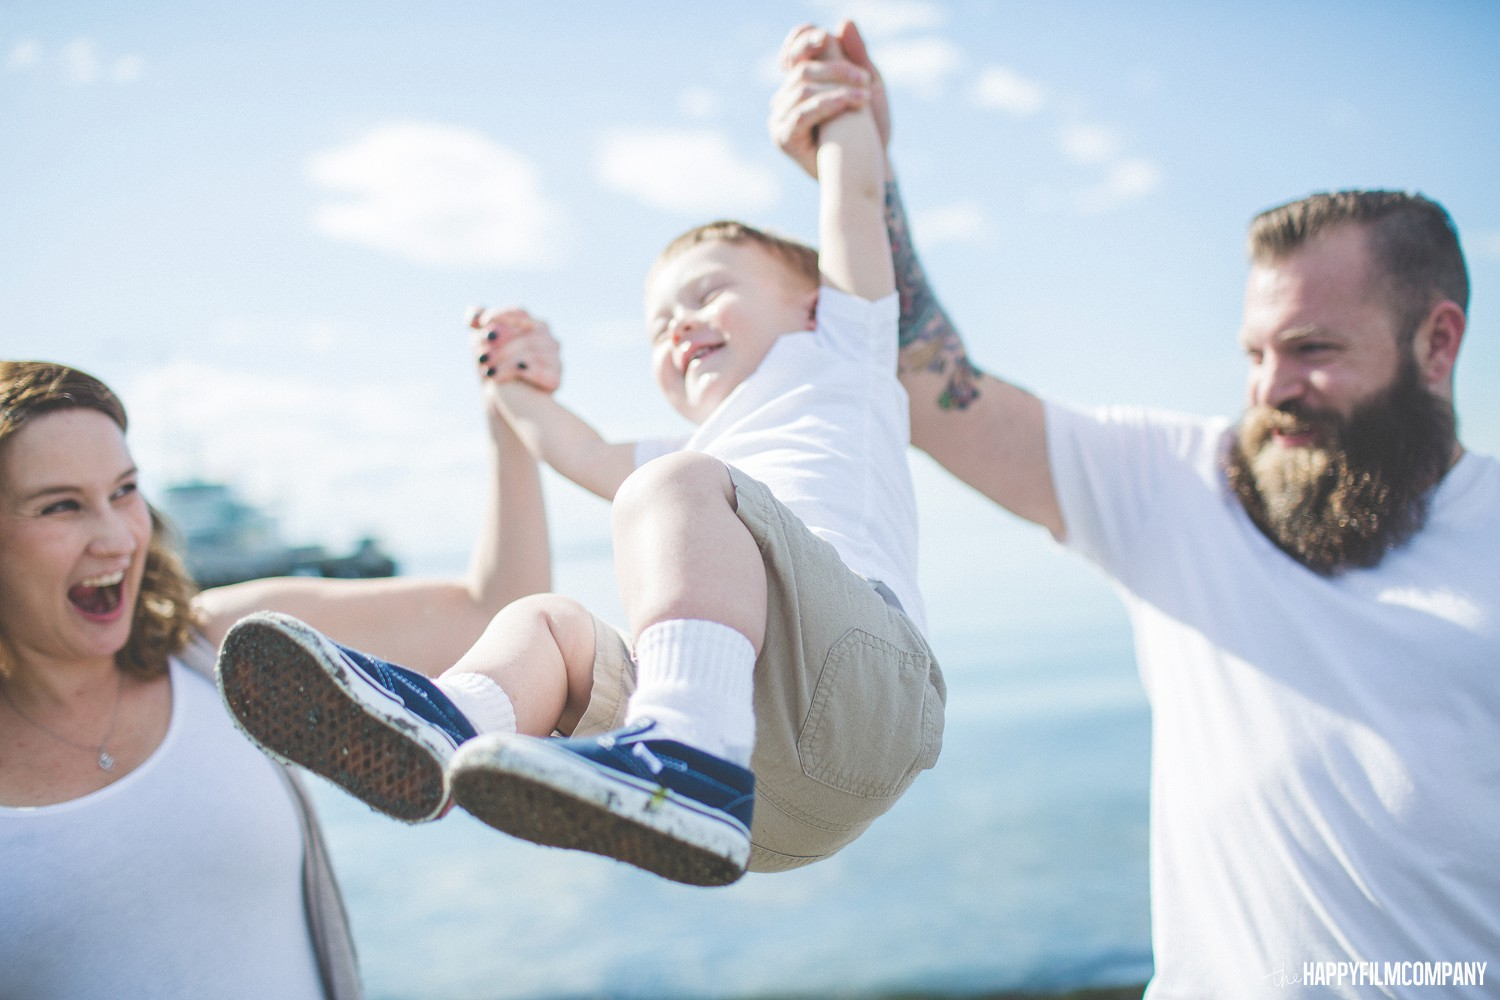 Mom and Dad lifting their son in the air - the Happy Film Company - Seattle Family Photos